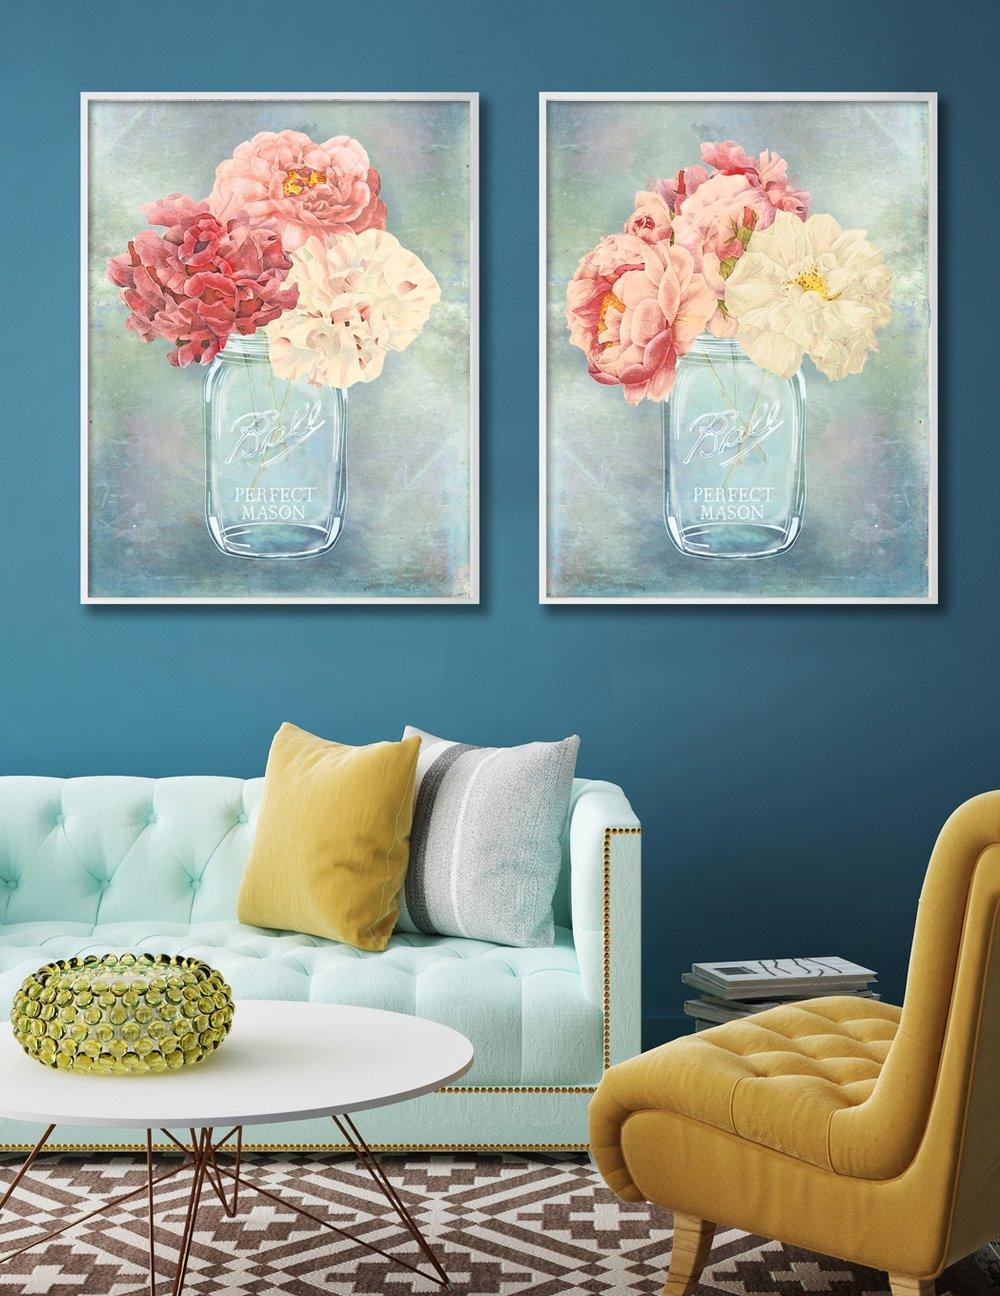 walldecor_12.jpg